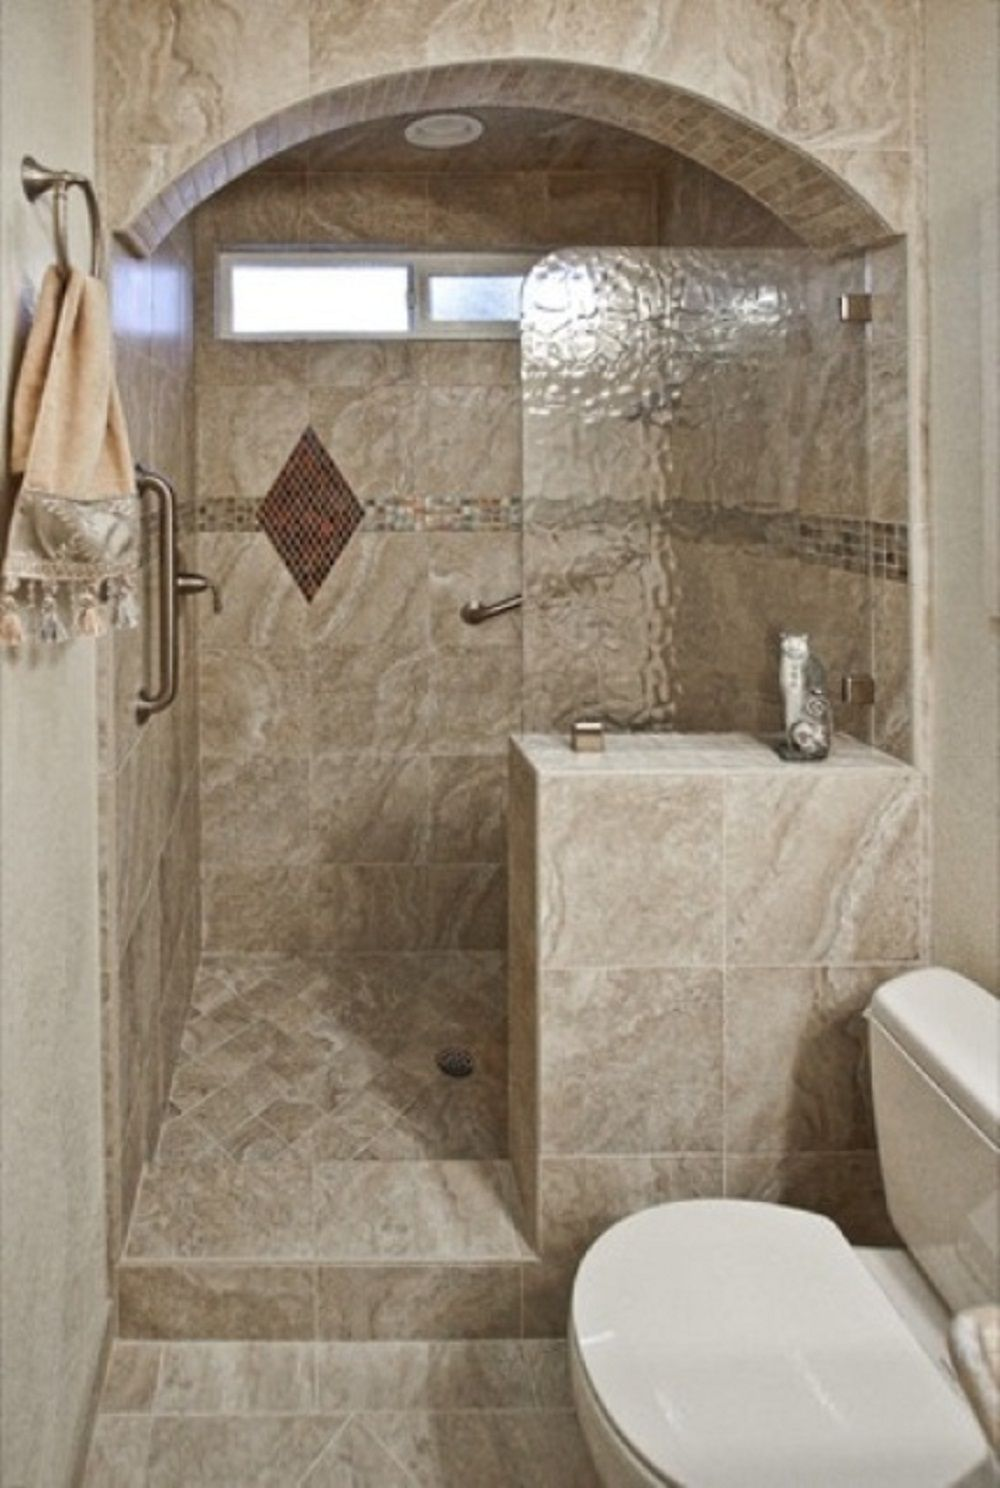 Tiny Bathroom Design Small Bathroom Design With Walk In Shower How To Decorate Small